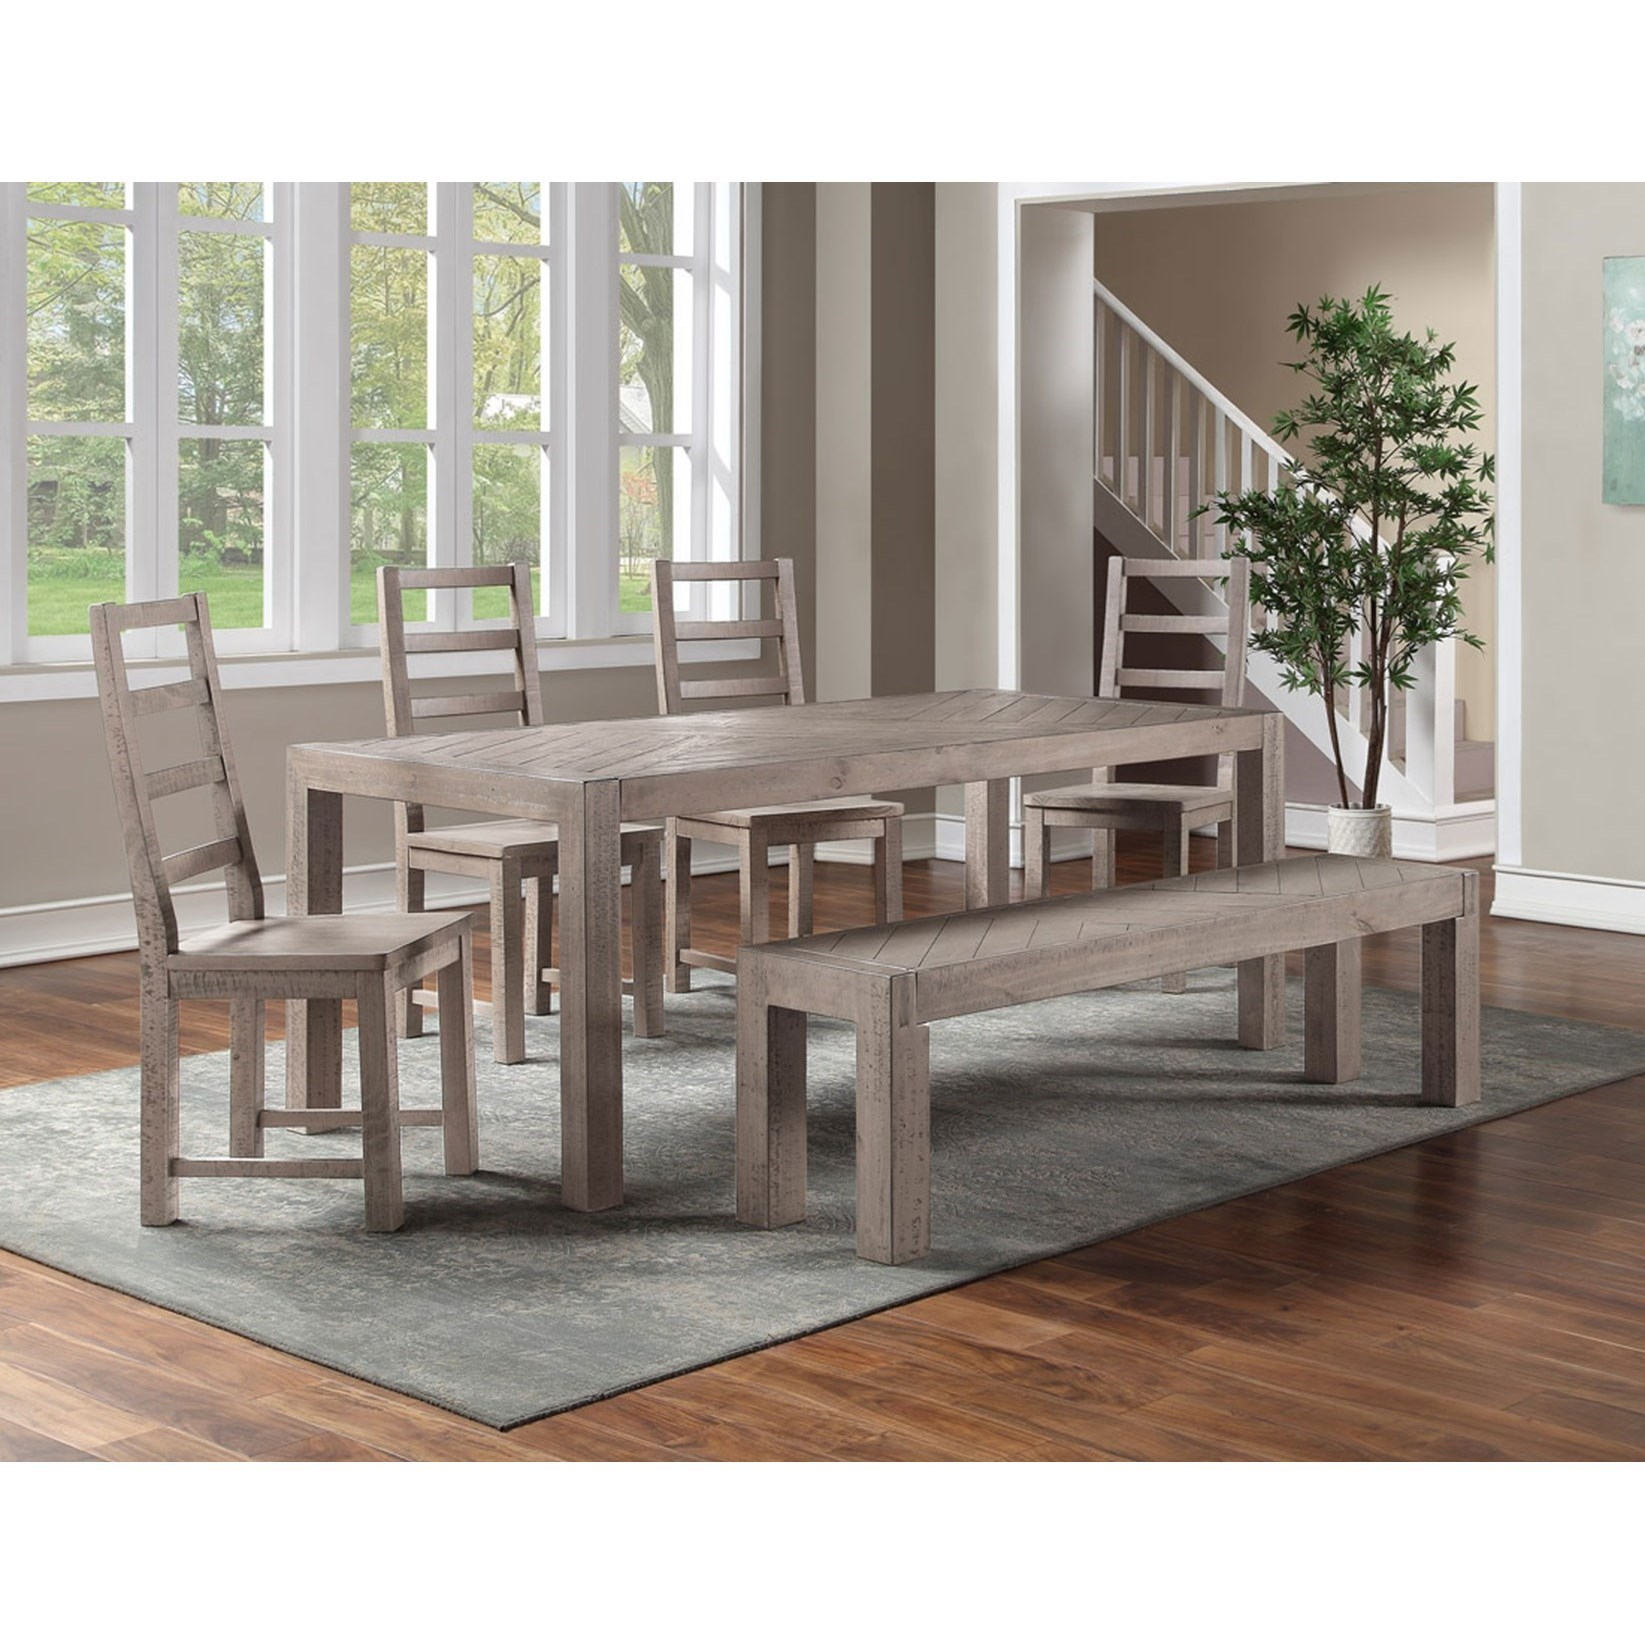 Auckland Table & Chair Set with Bench by Star at EFO Furniture Outlet